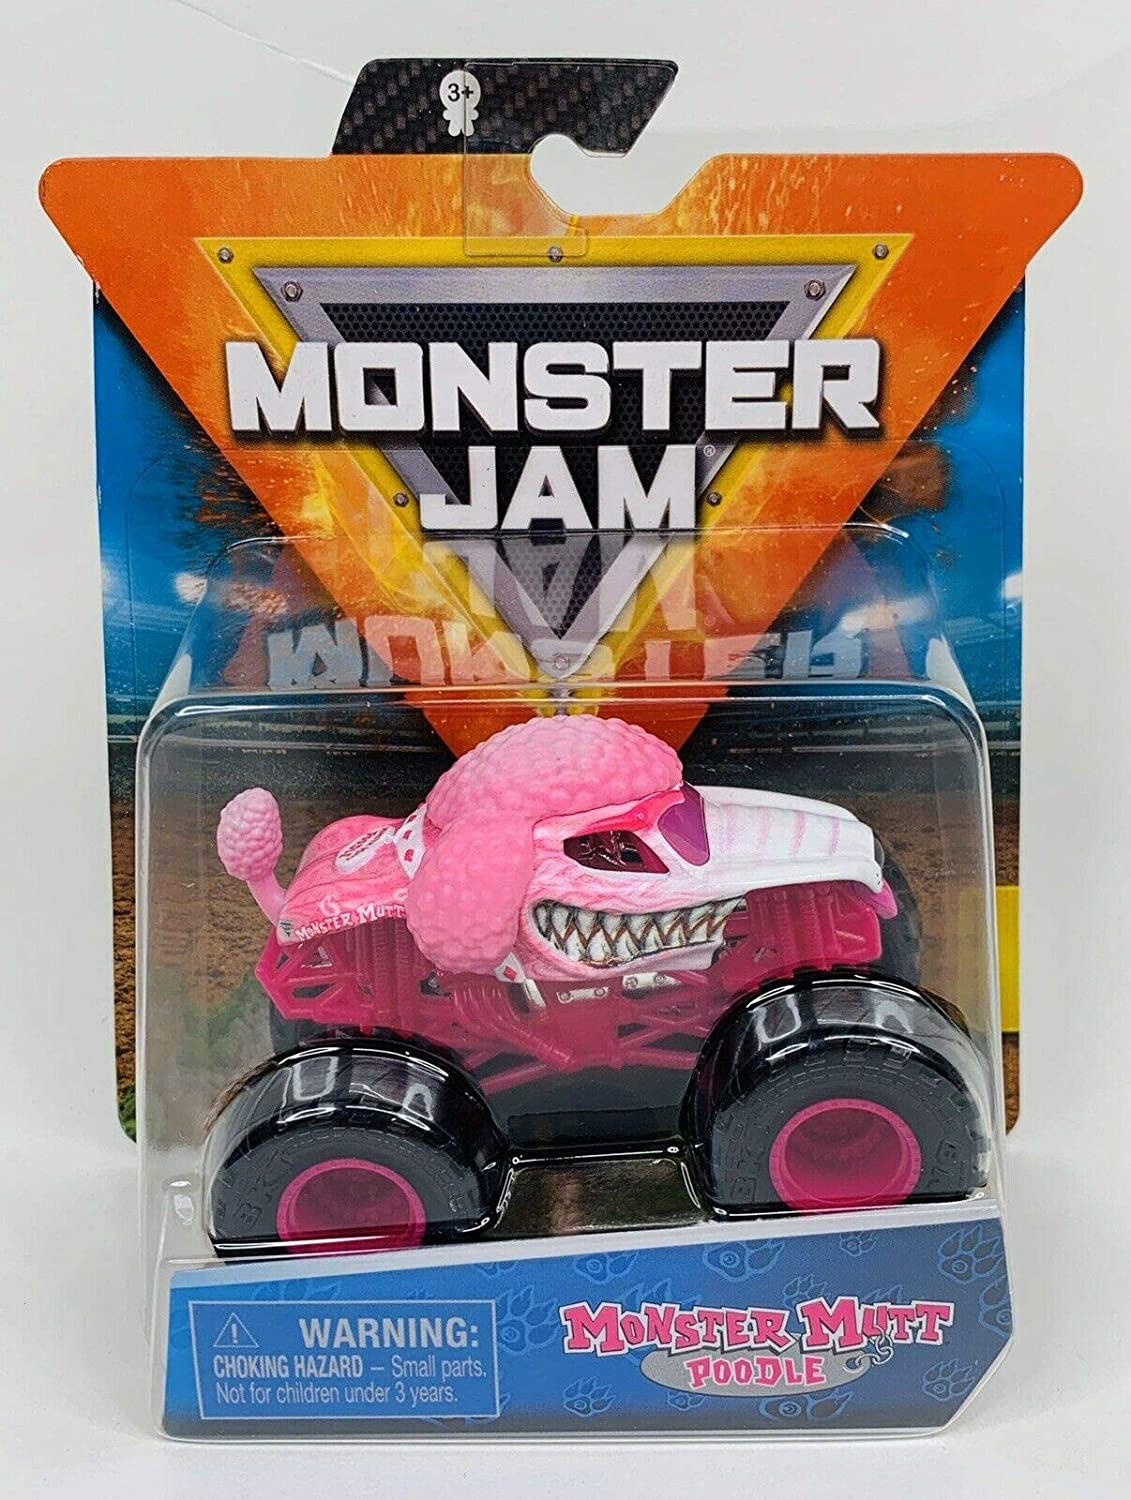 Amazon Com Monster Jam 2020 Spin Master 1 64 Diecast Monster Truck With Wristband Ruff Crowd Monster Mutt Poodle Toys Games